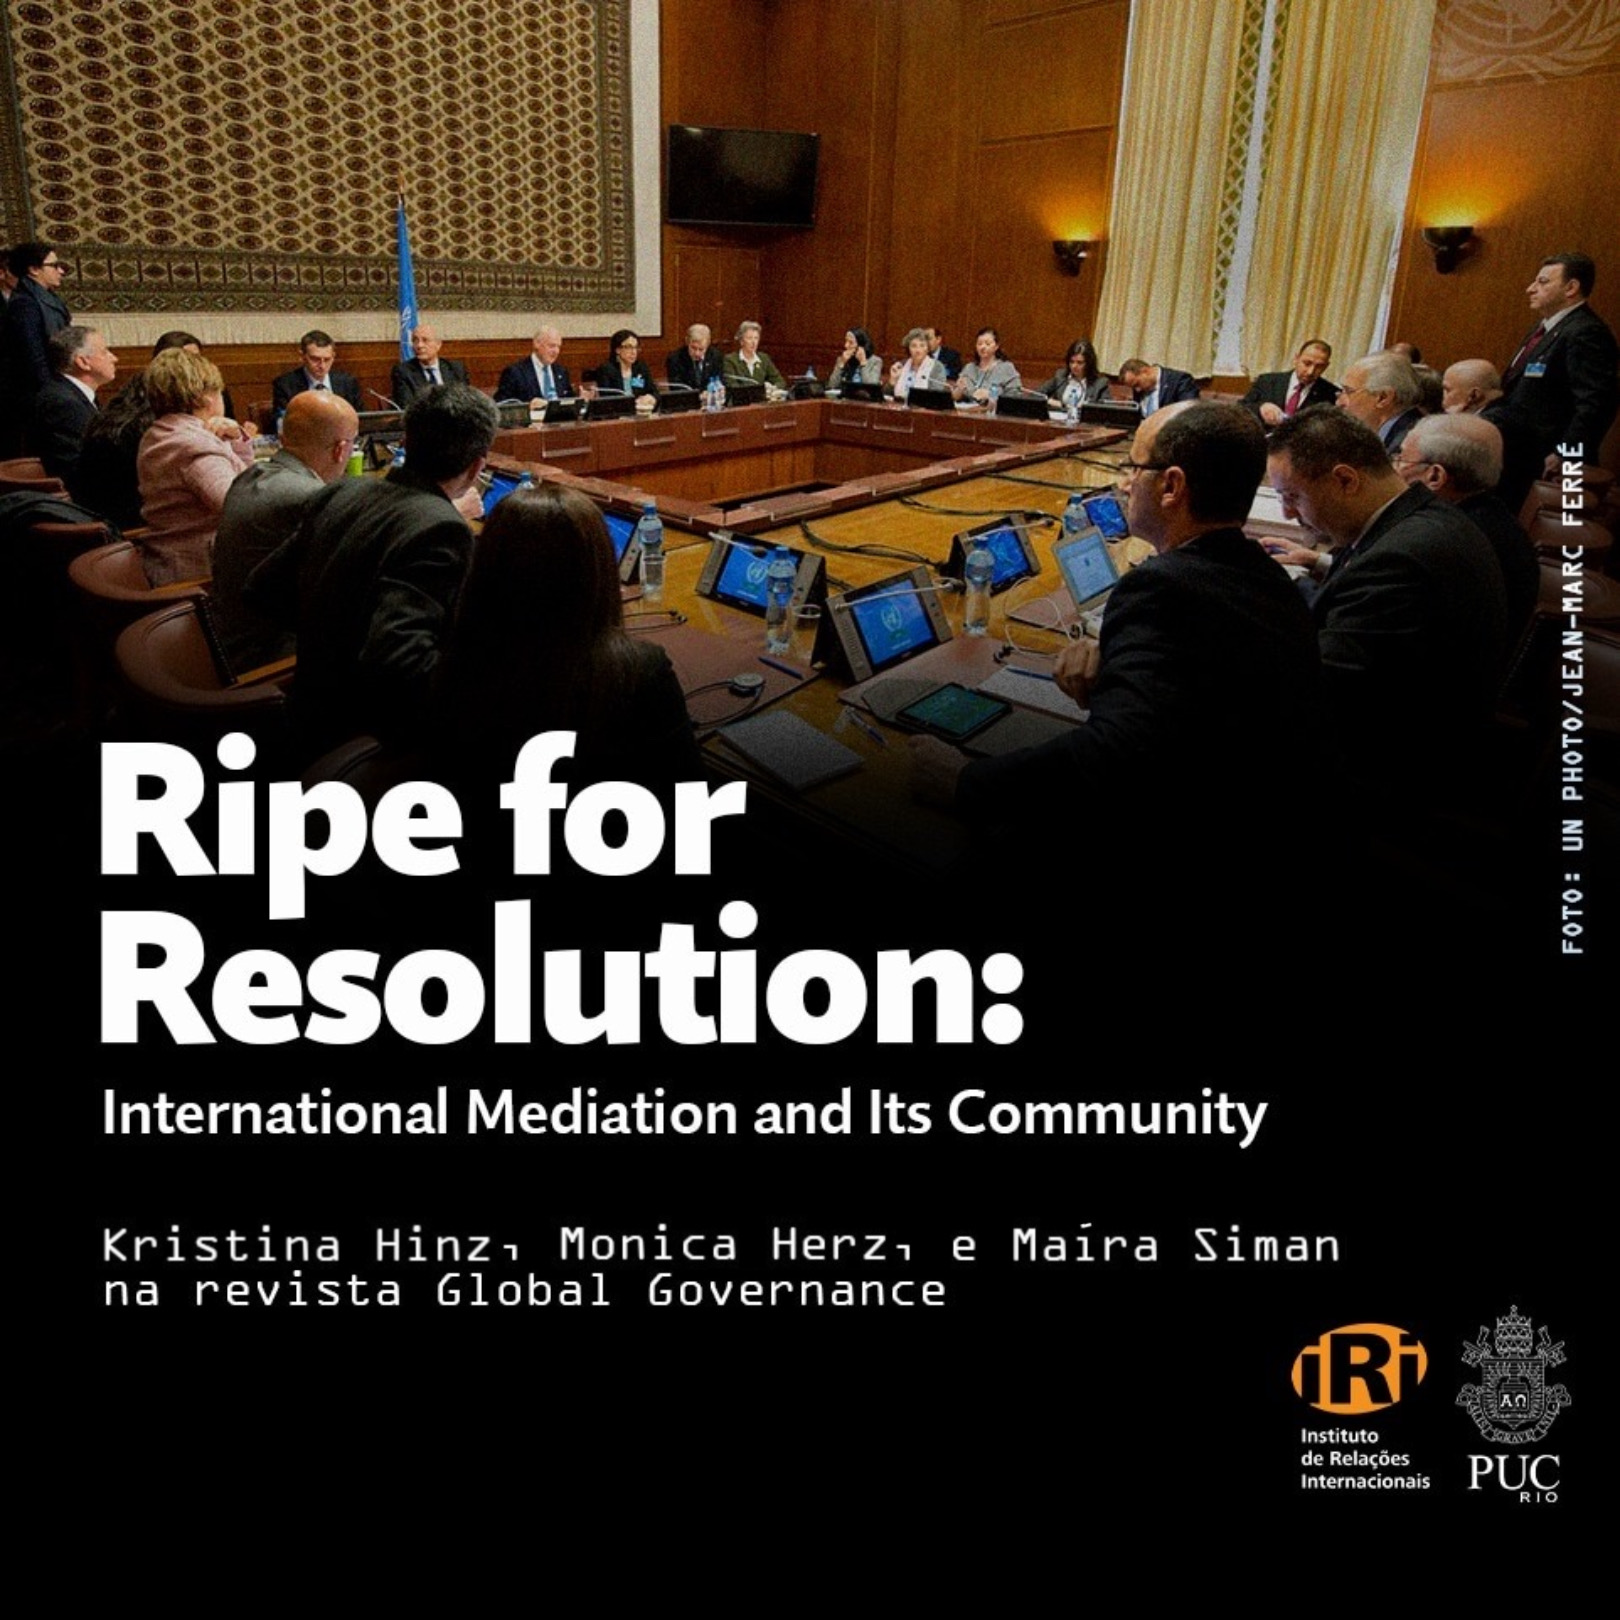 Ripe for Resolution: International Mediation and Its Community